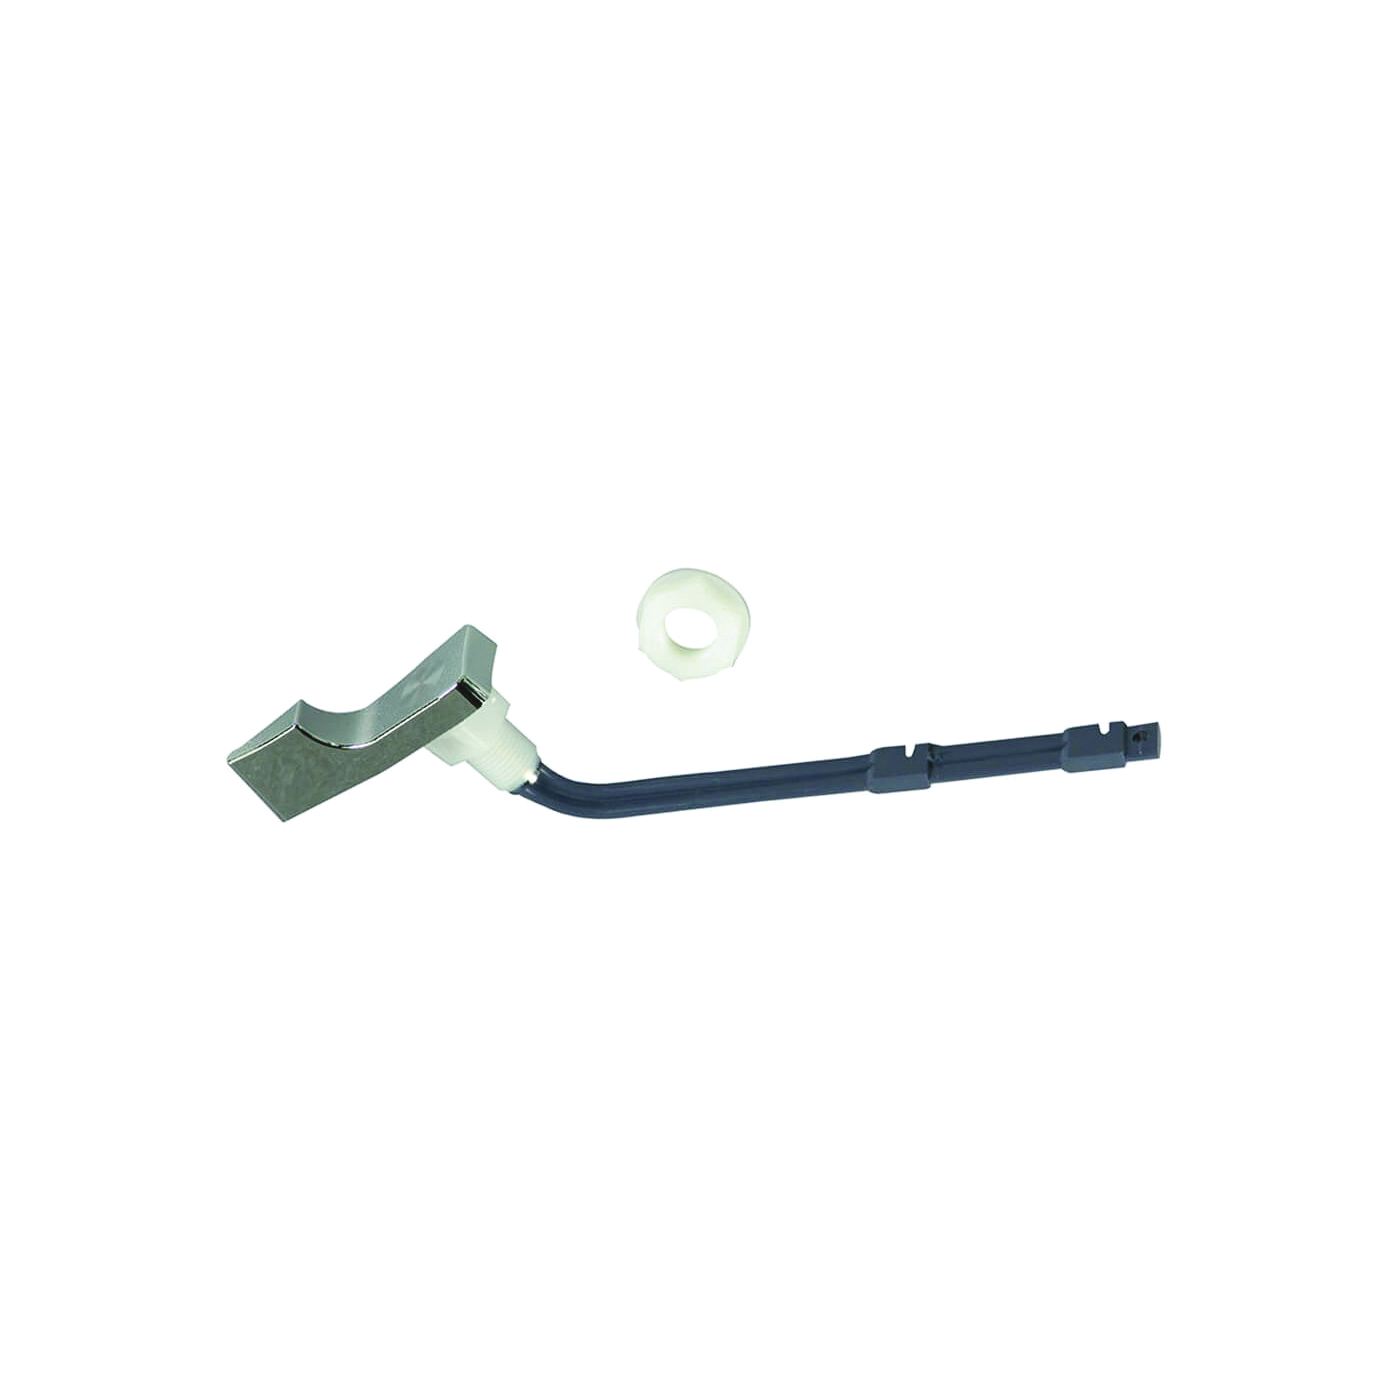 Picture of Danco 88596 Toilet Handle, Plastic, For: American Standard Cadet Toilets